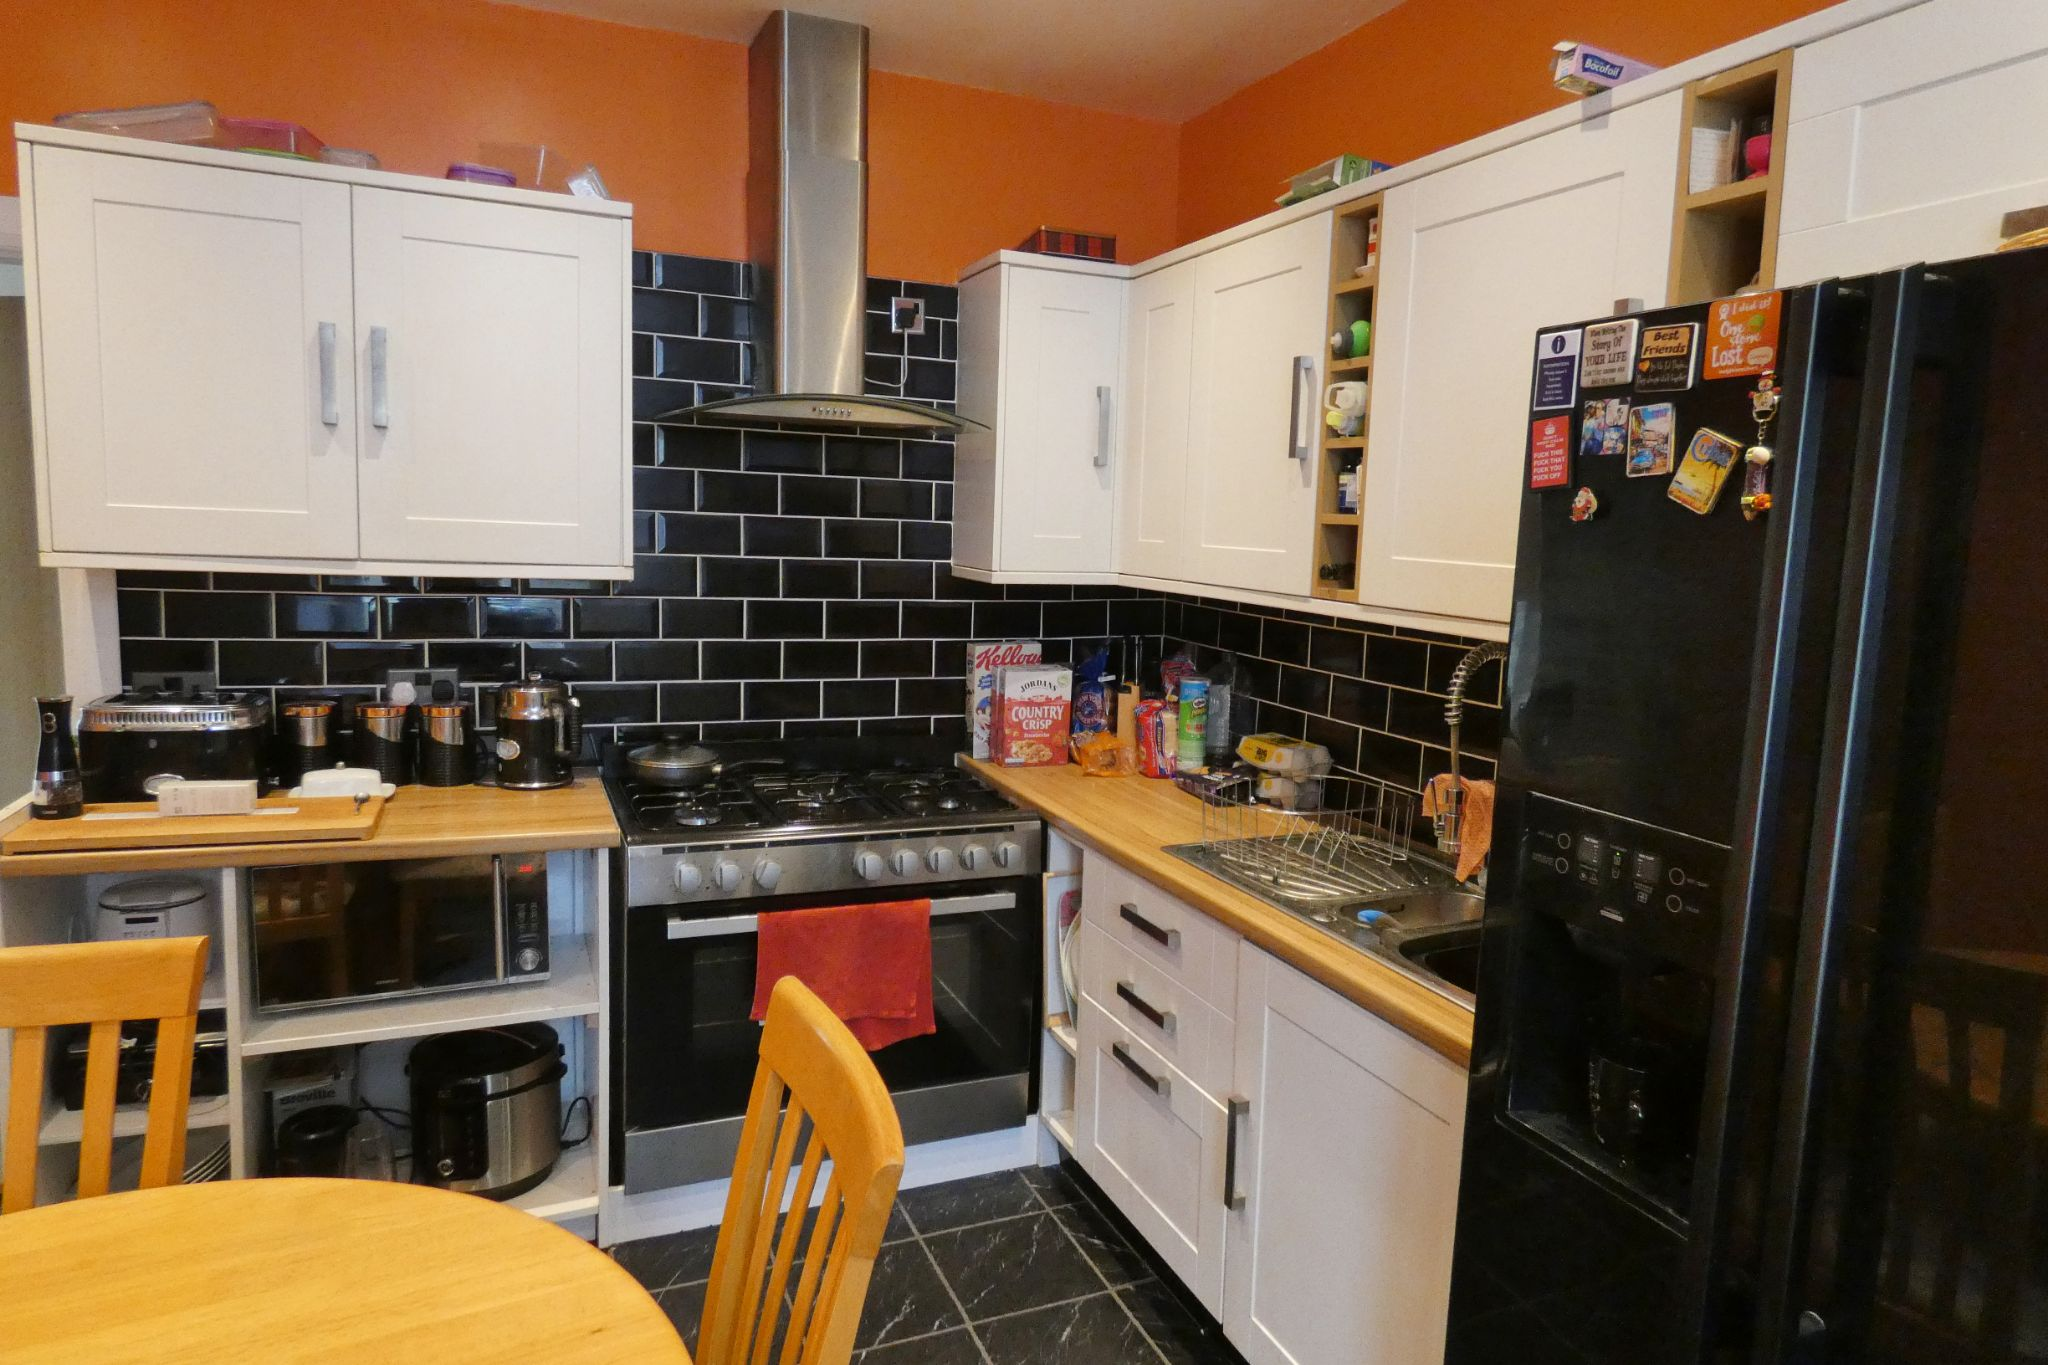 8 bedroom guest house For Sale in Douglas - Property photograph